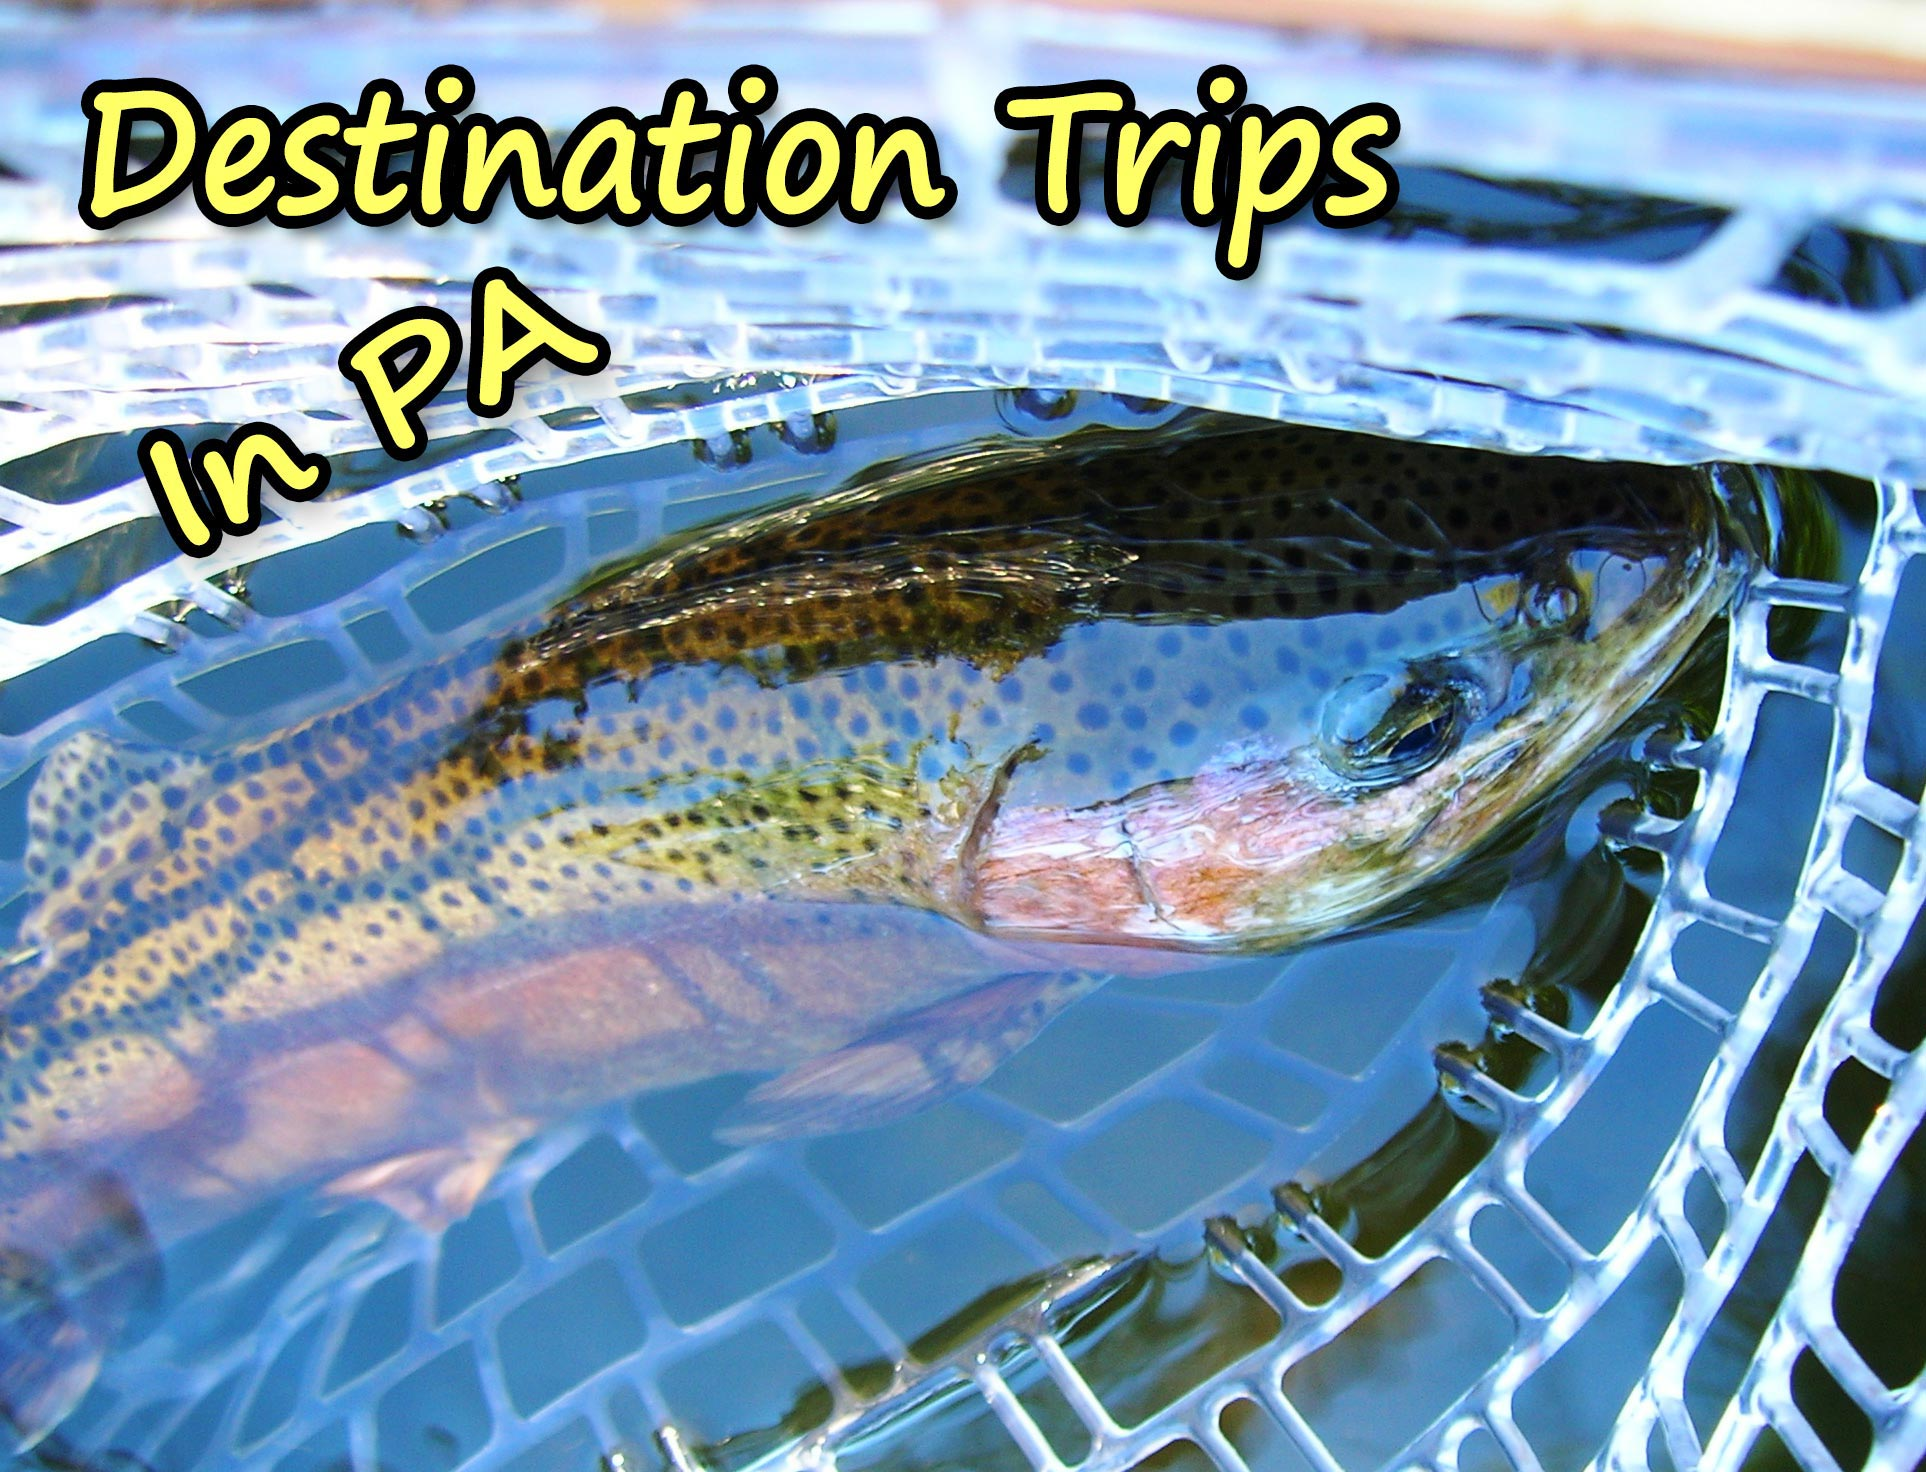 Enjoy One Of Our All Inclusive  (Food, Lodging and Guiding) Trips In Central Pennsylvania, Penns Creek, Spring Creek, Little Juniata, Delaware River And Brook Trout Fishing.